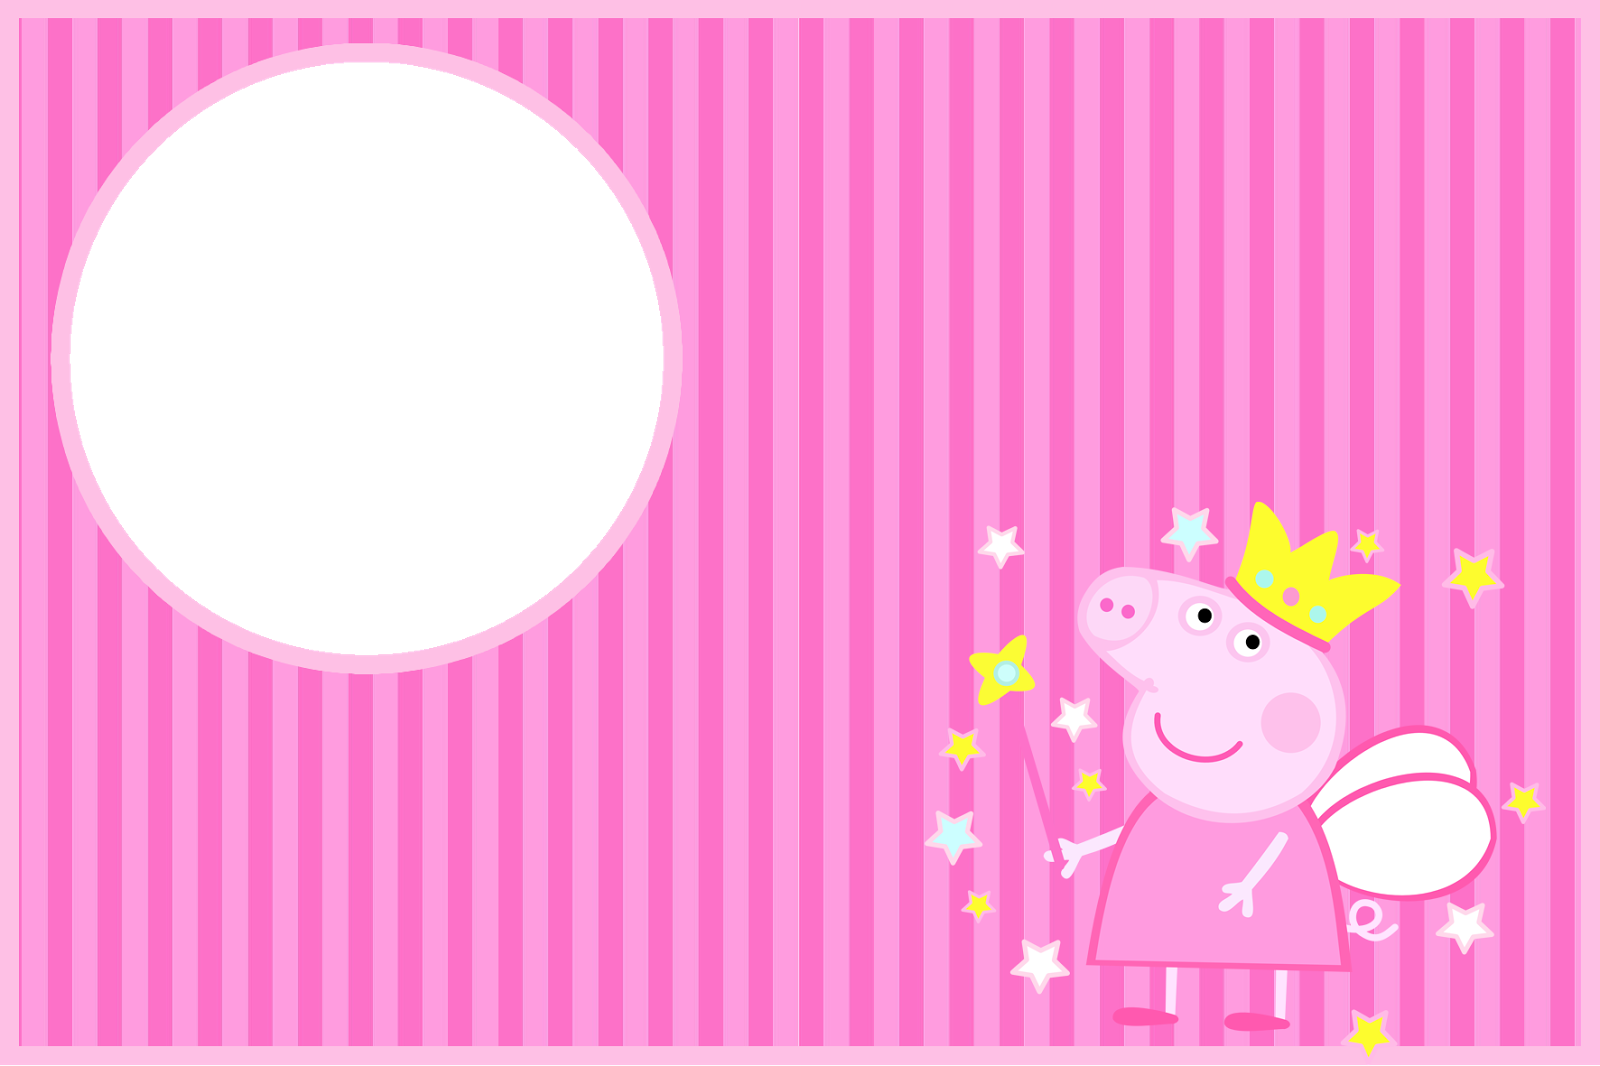 Peppa pig fairy png. Invitations and free party